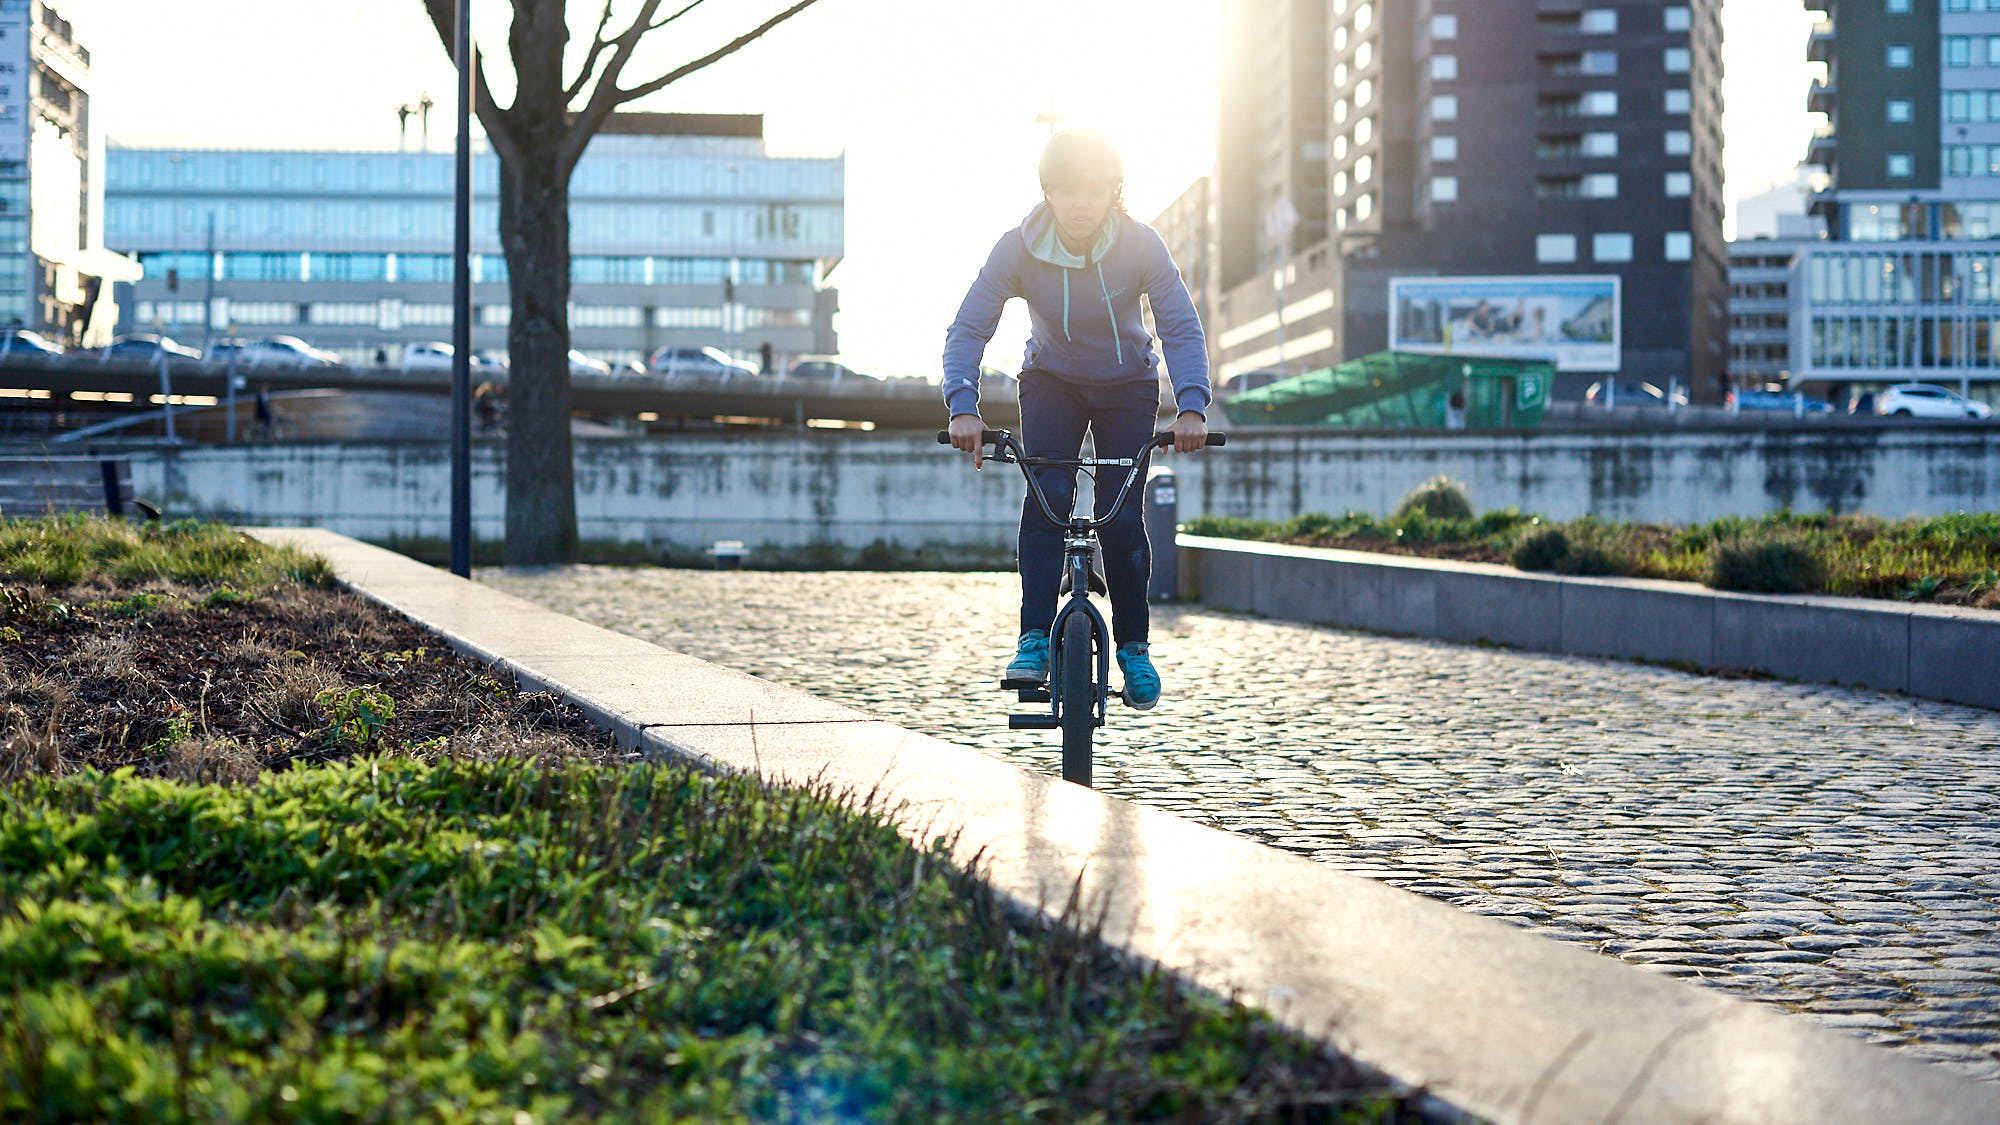 Shanice Silva Cruz in Rotterdam, riding her BMX